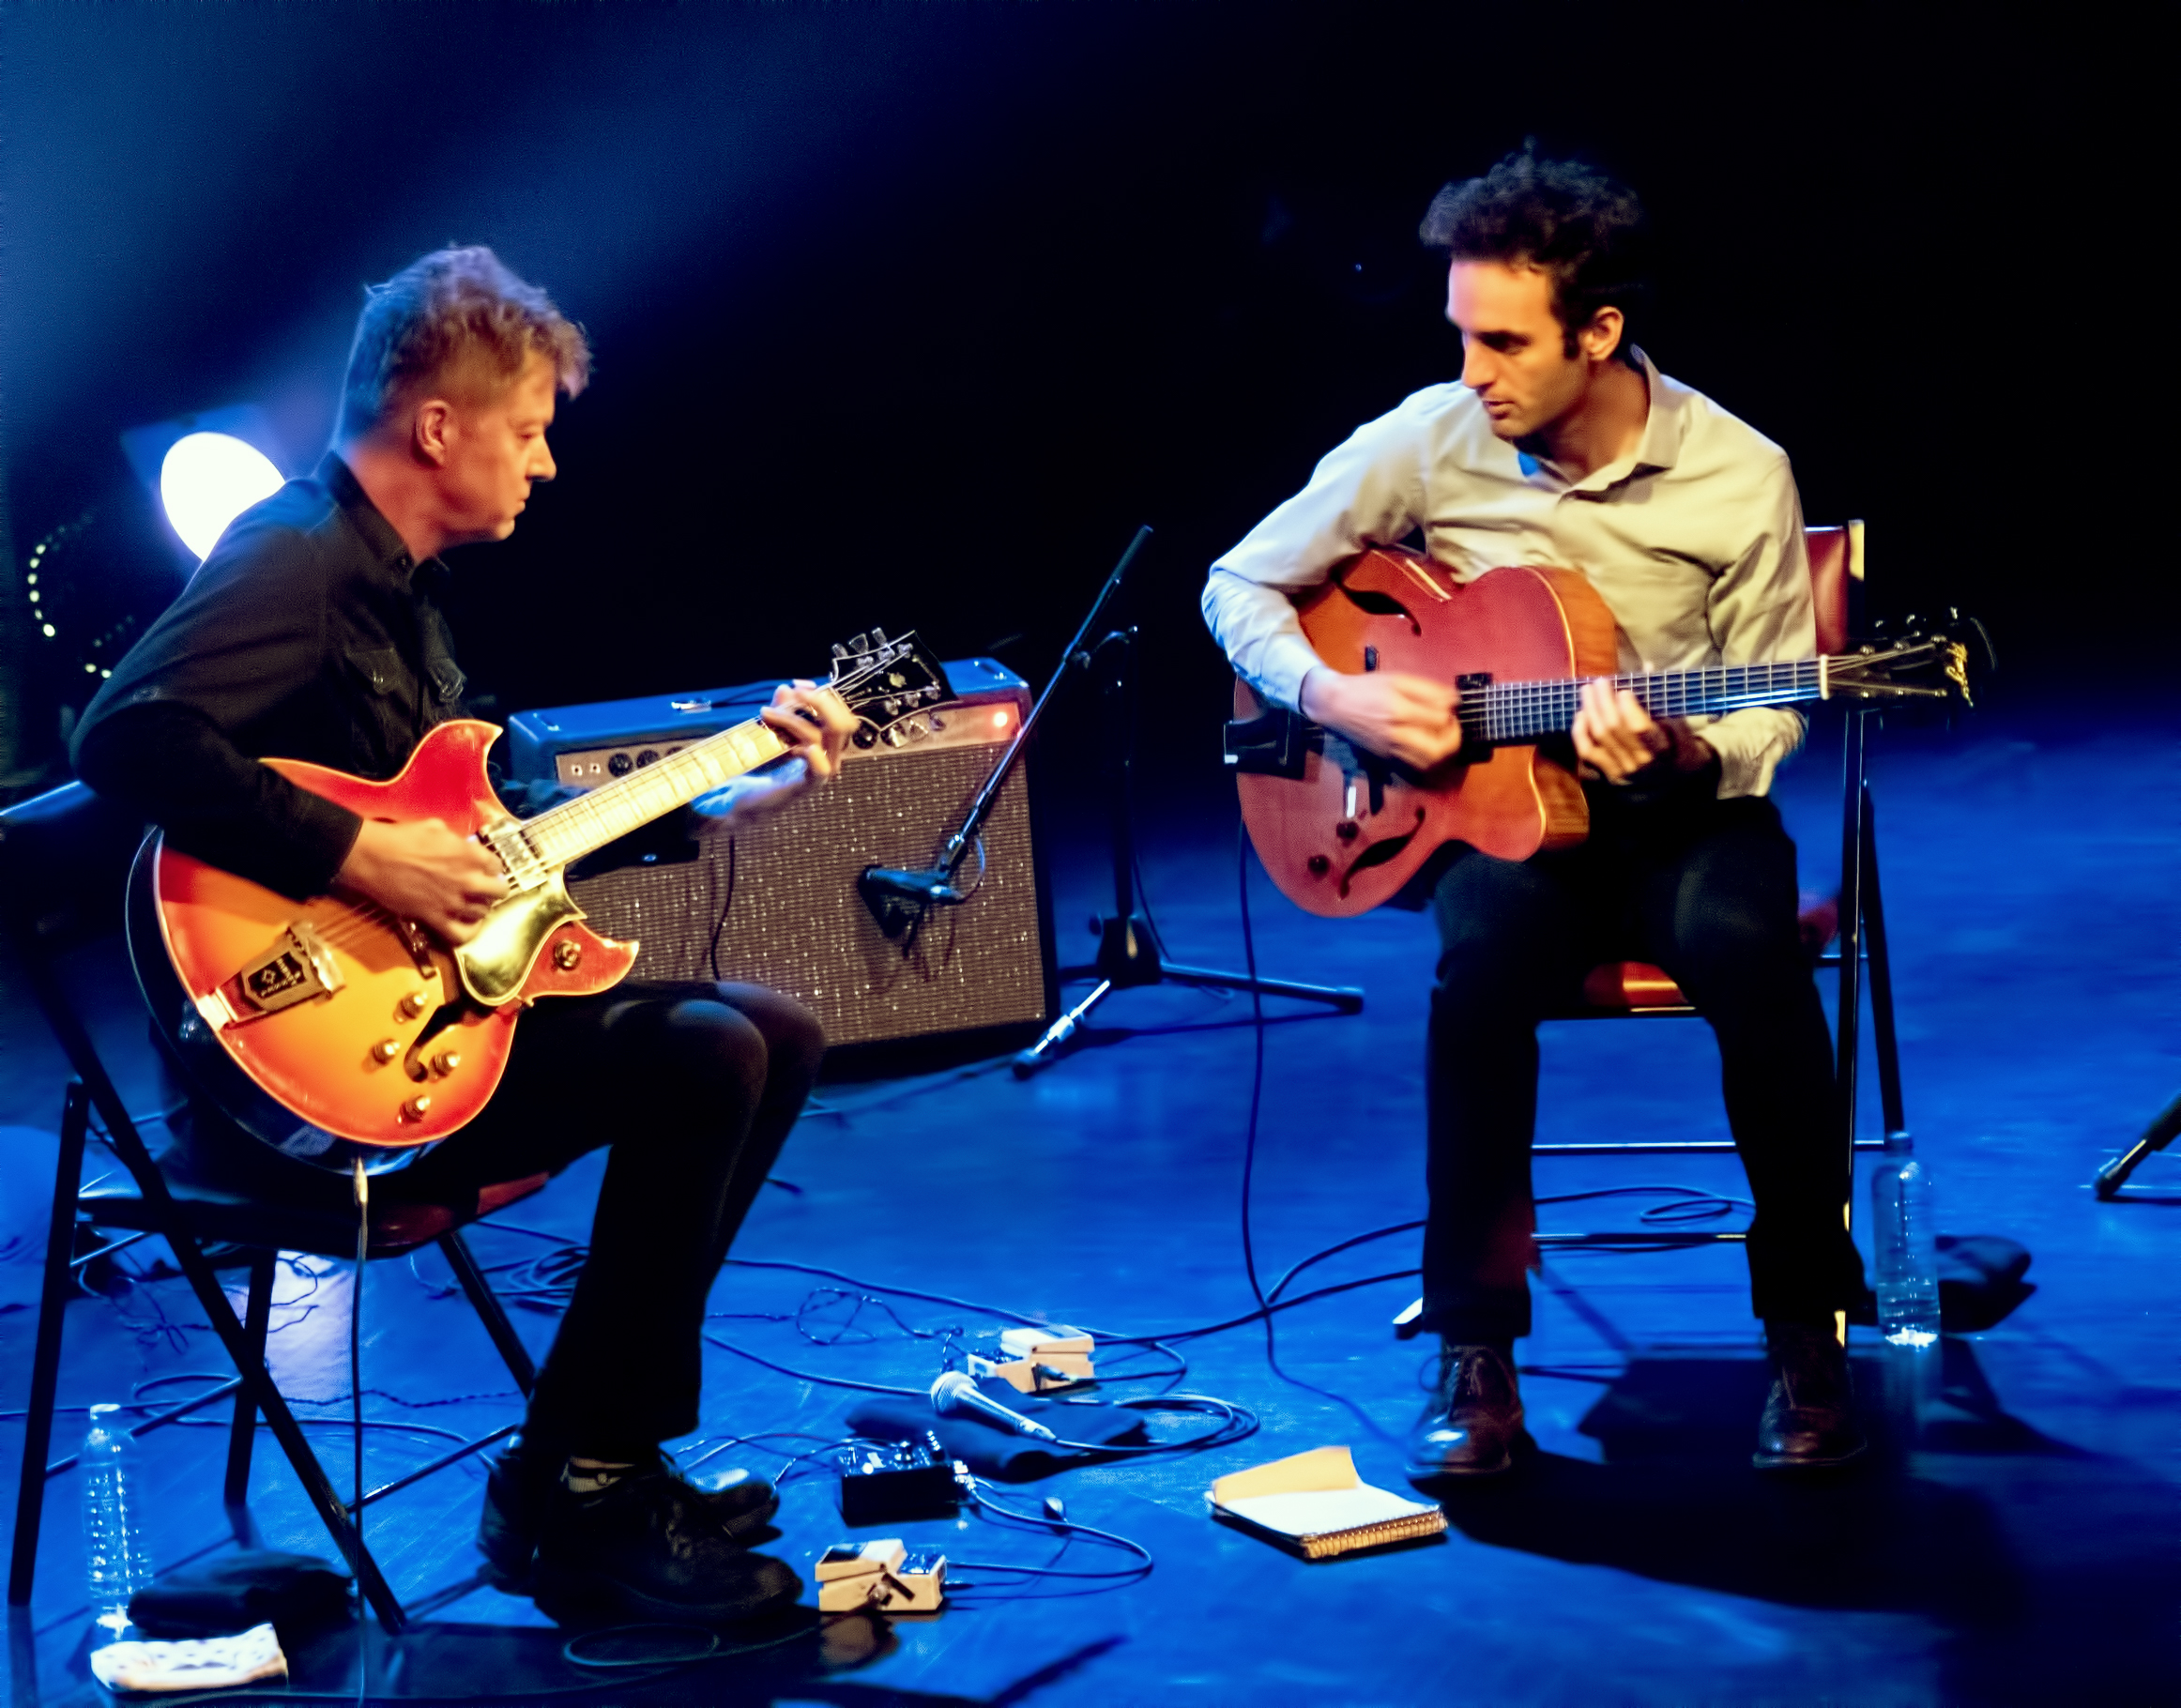 Nels Cline and Julian Lage at the Montreal Jazz Festival 2015